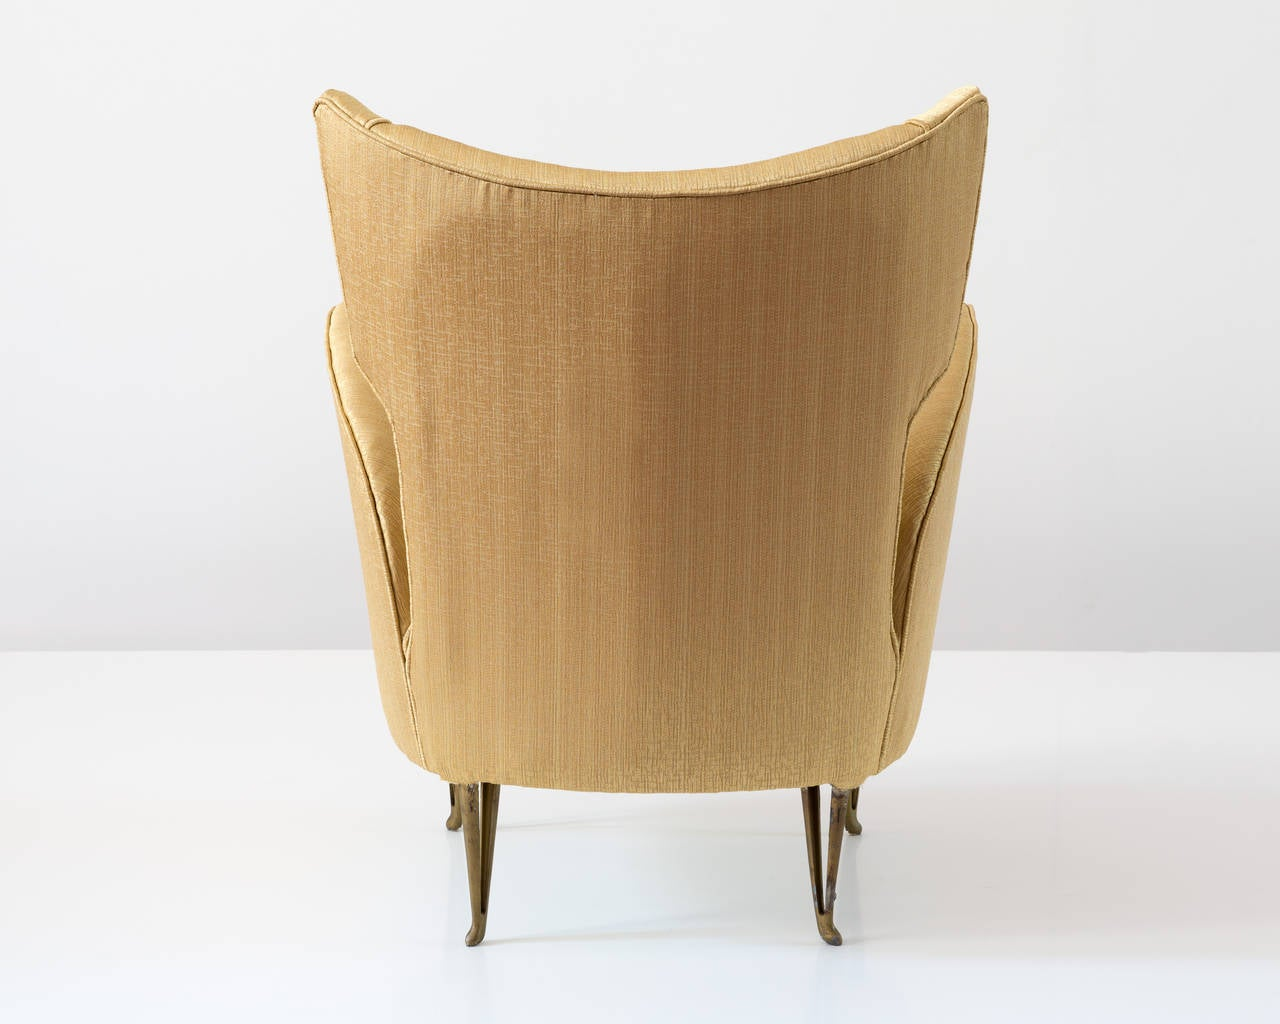 Elegant Italian Modern Yellow Armchair by Isa Bergamo, 1950 For Sale 2